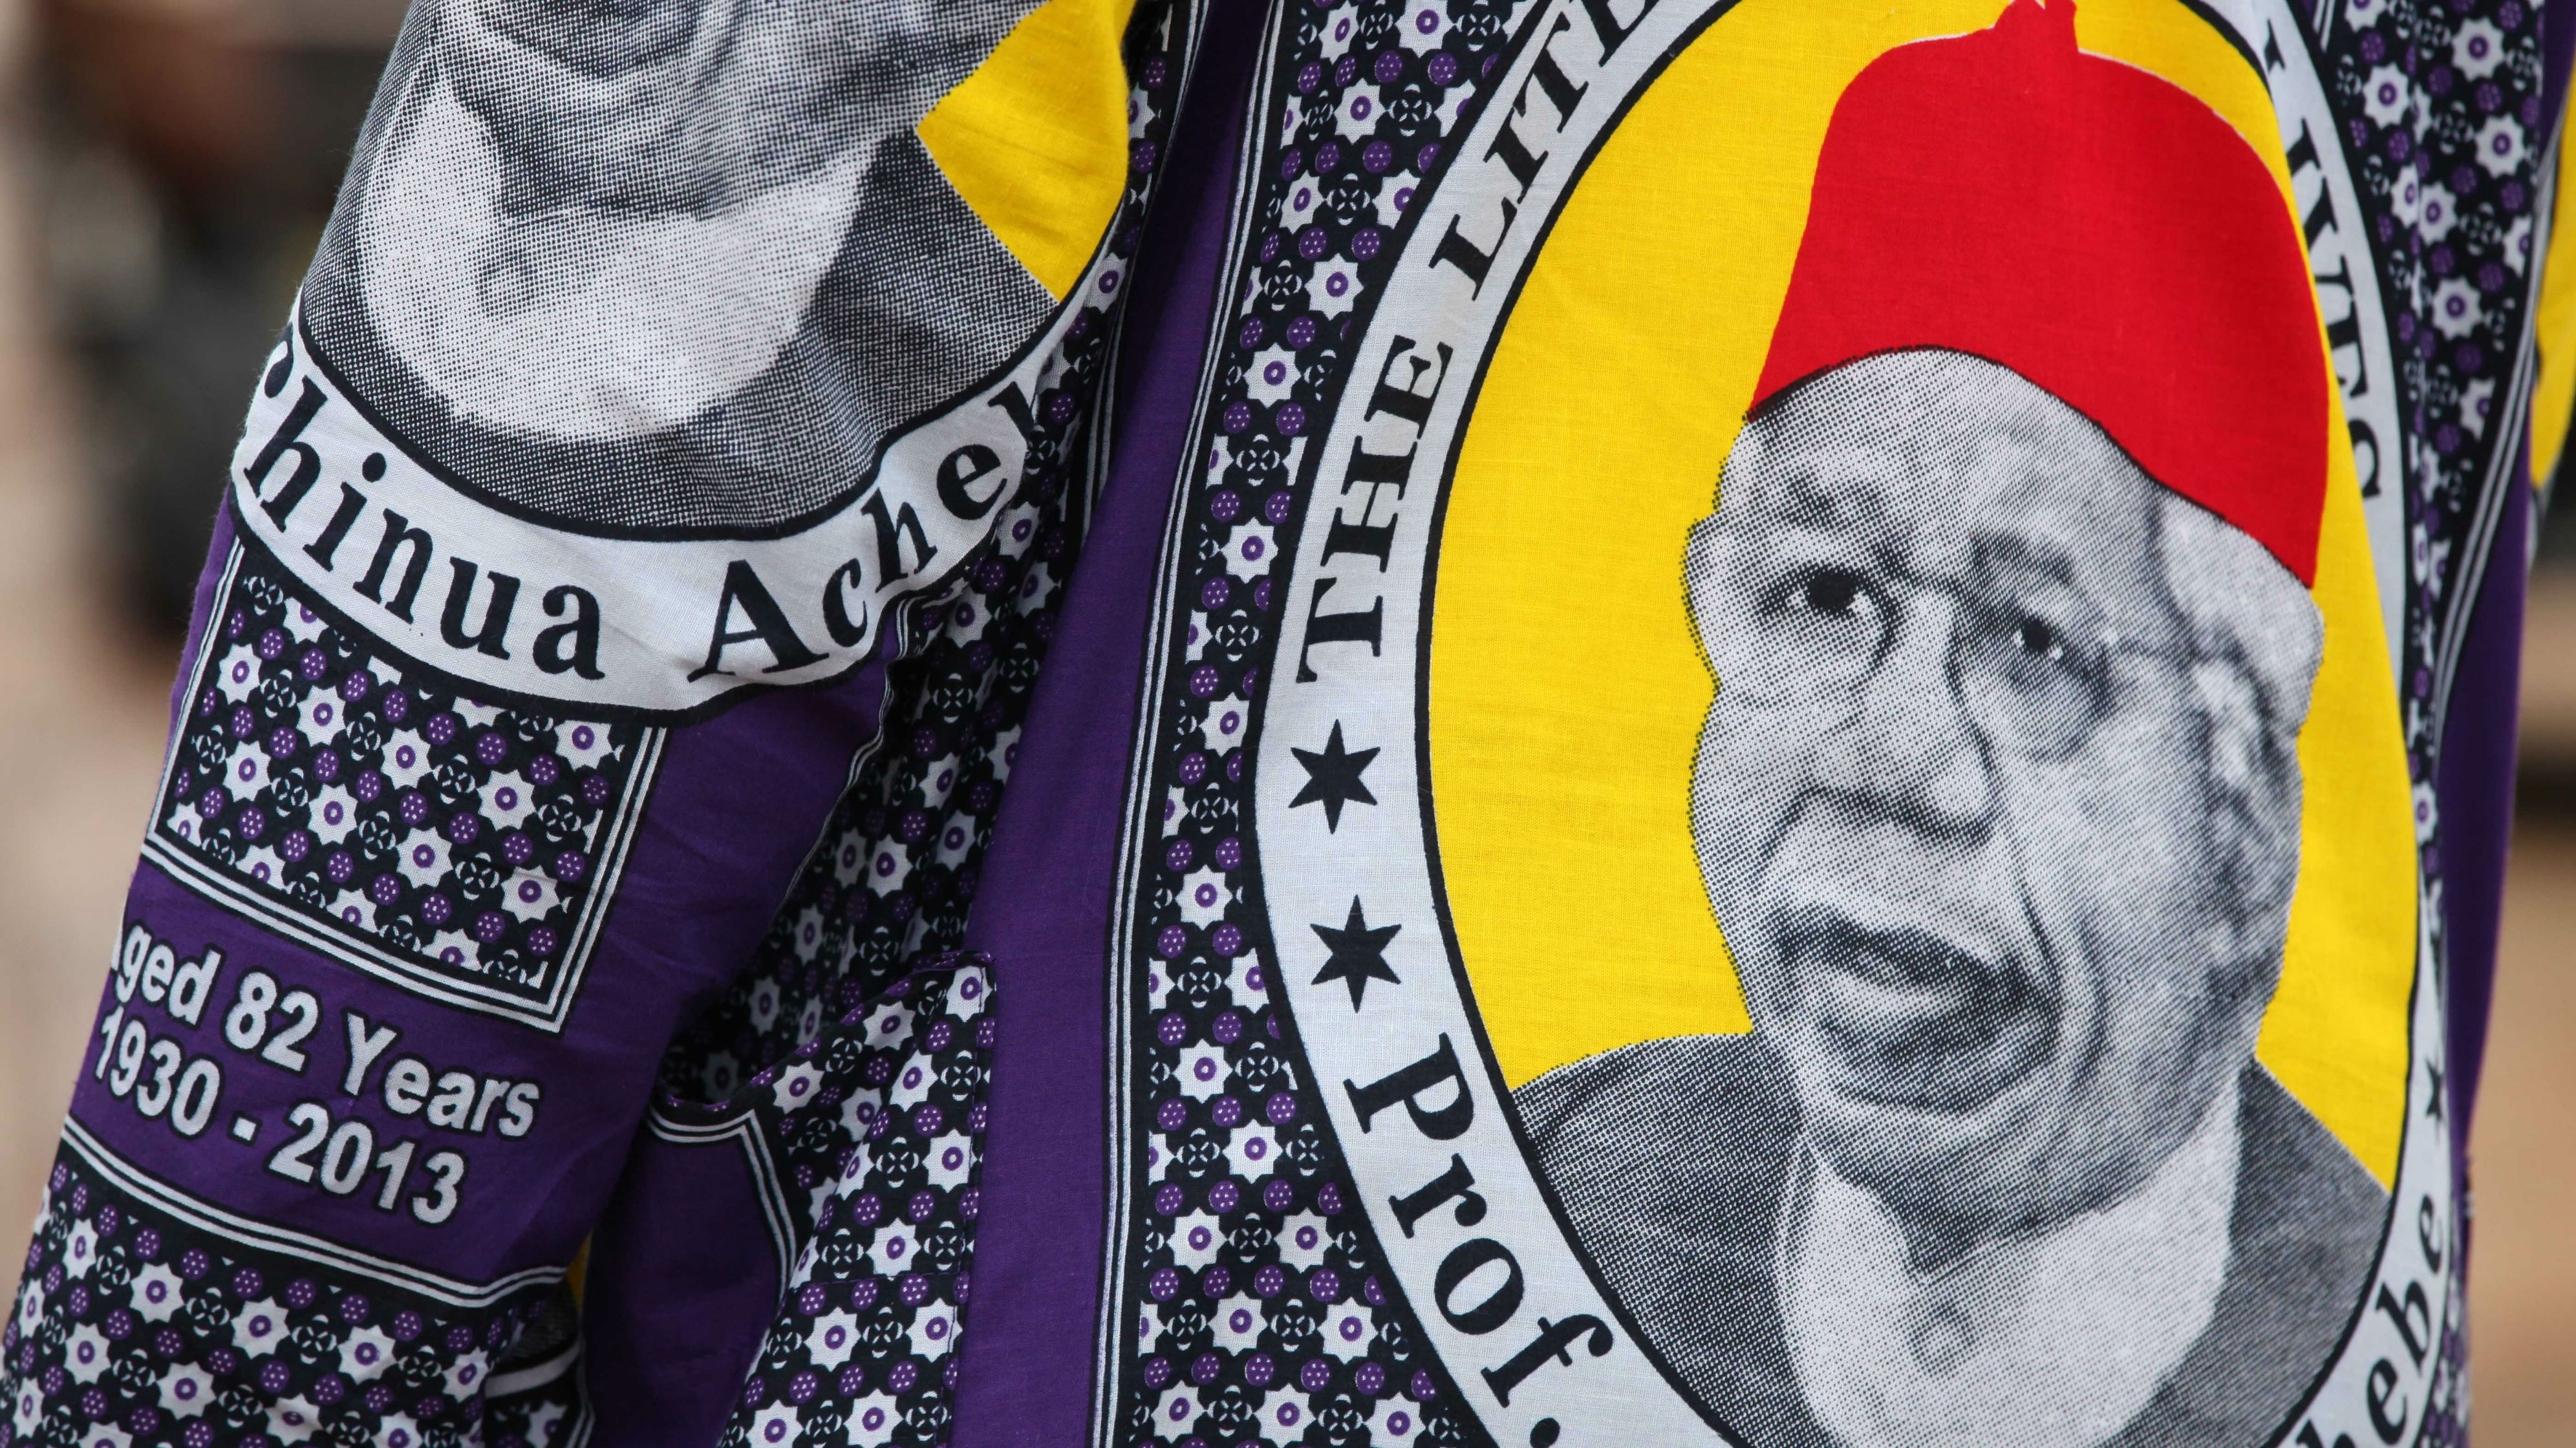 A man wears African print fabric bearing the image of with the face of the late author Chinua Achebe in Awka, Nigeria, Wednesday, May 22, 2013. People gathered Wednesday to celebrate the life of author Chinua Achebe, who died in March at the age of 82. His family plans to bury the literary icon Thursday in his home village of Ogidi. (AP Photo/Sunday Alamba)